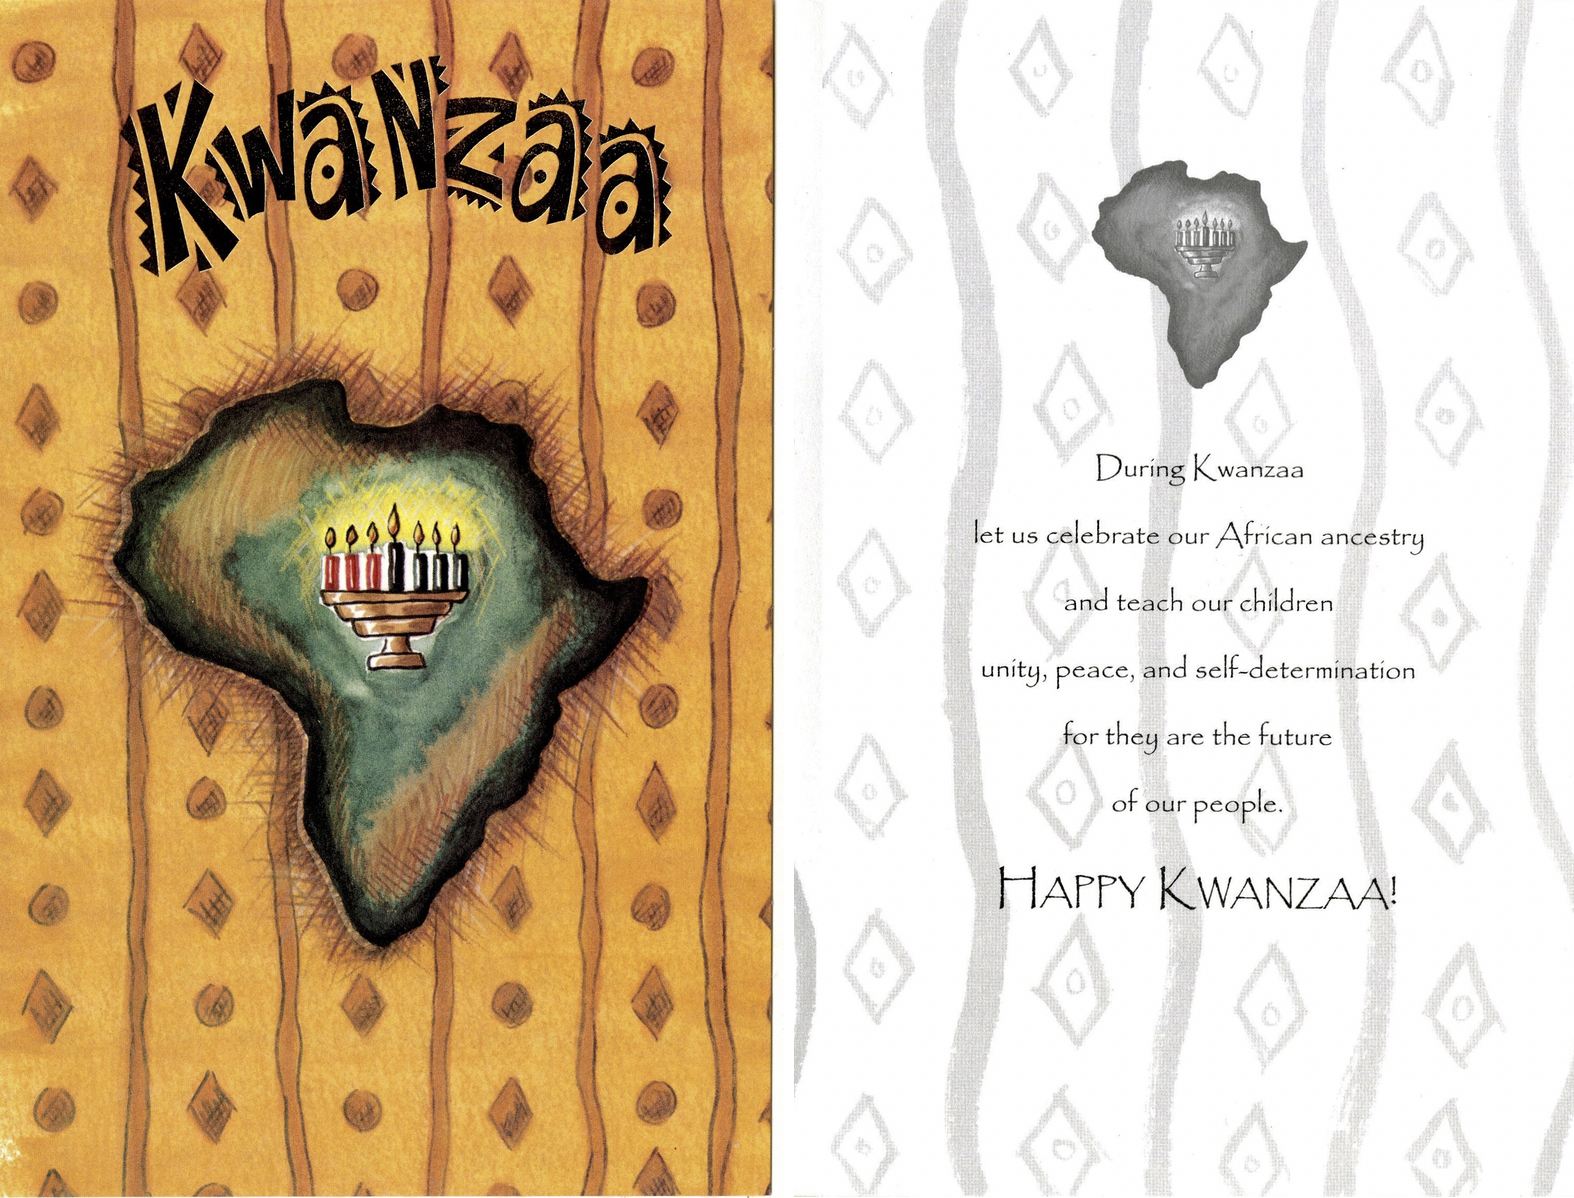 "Exterior and interior of a greeting card juxtaposed. The exterior reads, ""Happy Kwanzaa"" in gold text. A drawing of Africa (colored in shades of green and brown) is in the center of the card. Superimposed on the continent is a fully-lit Kinara. The card exterior's background is yellow-orange. The interior of the card reads, ""During Kwanzaa / let us celebrate our African ancestry / and teach our children / unity, peace, and self-determination / for they are the future / of our people. / HAPPY KWANZAA!"""